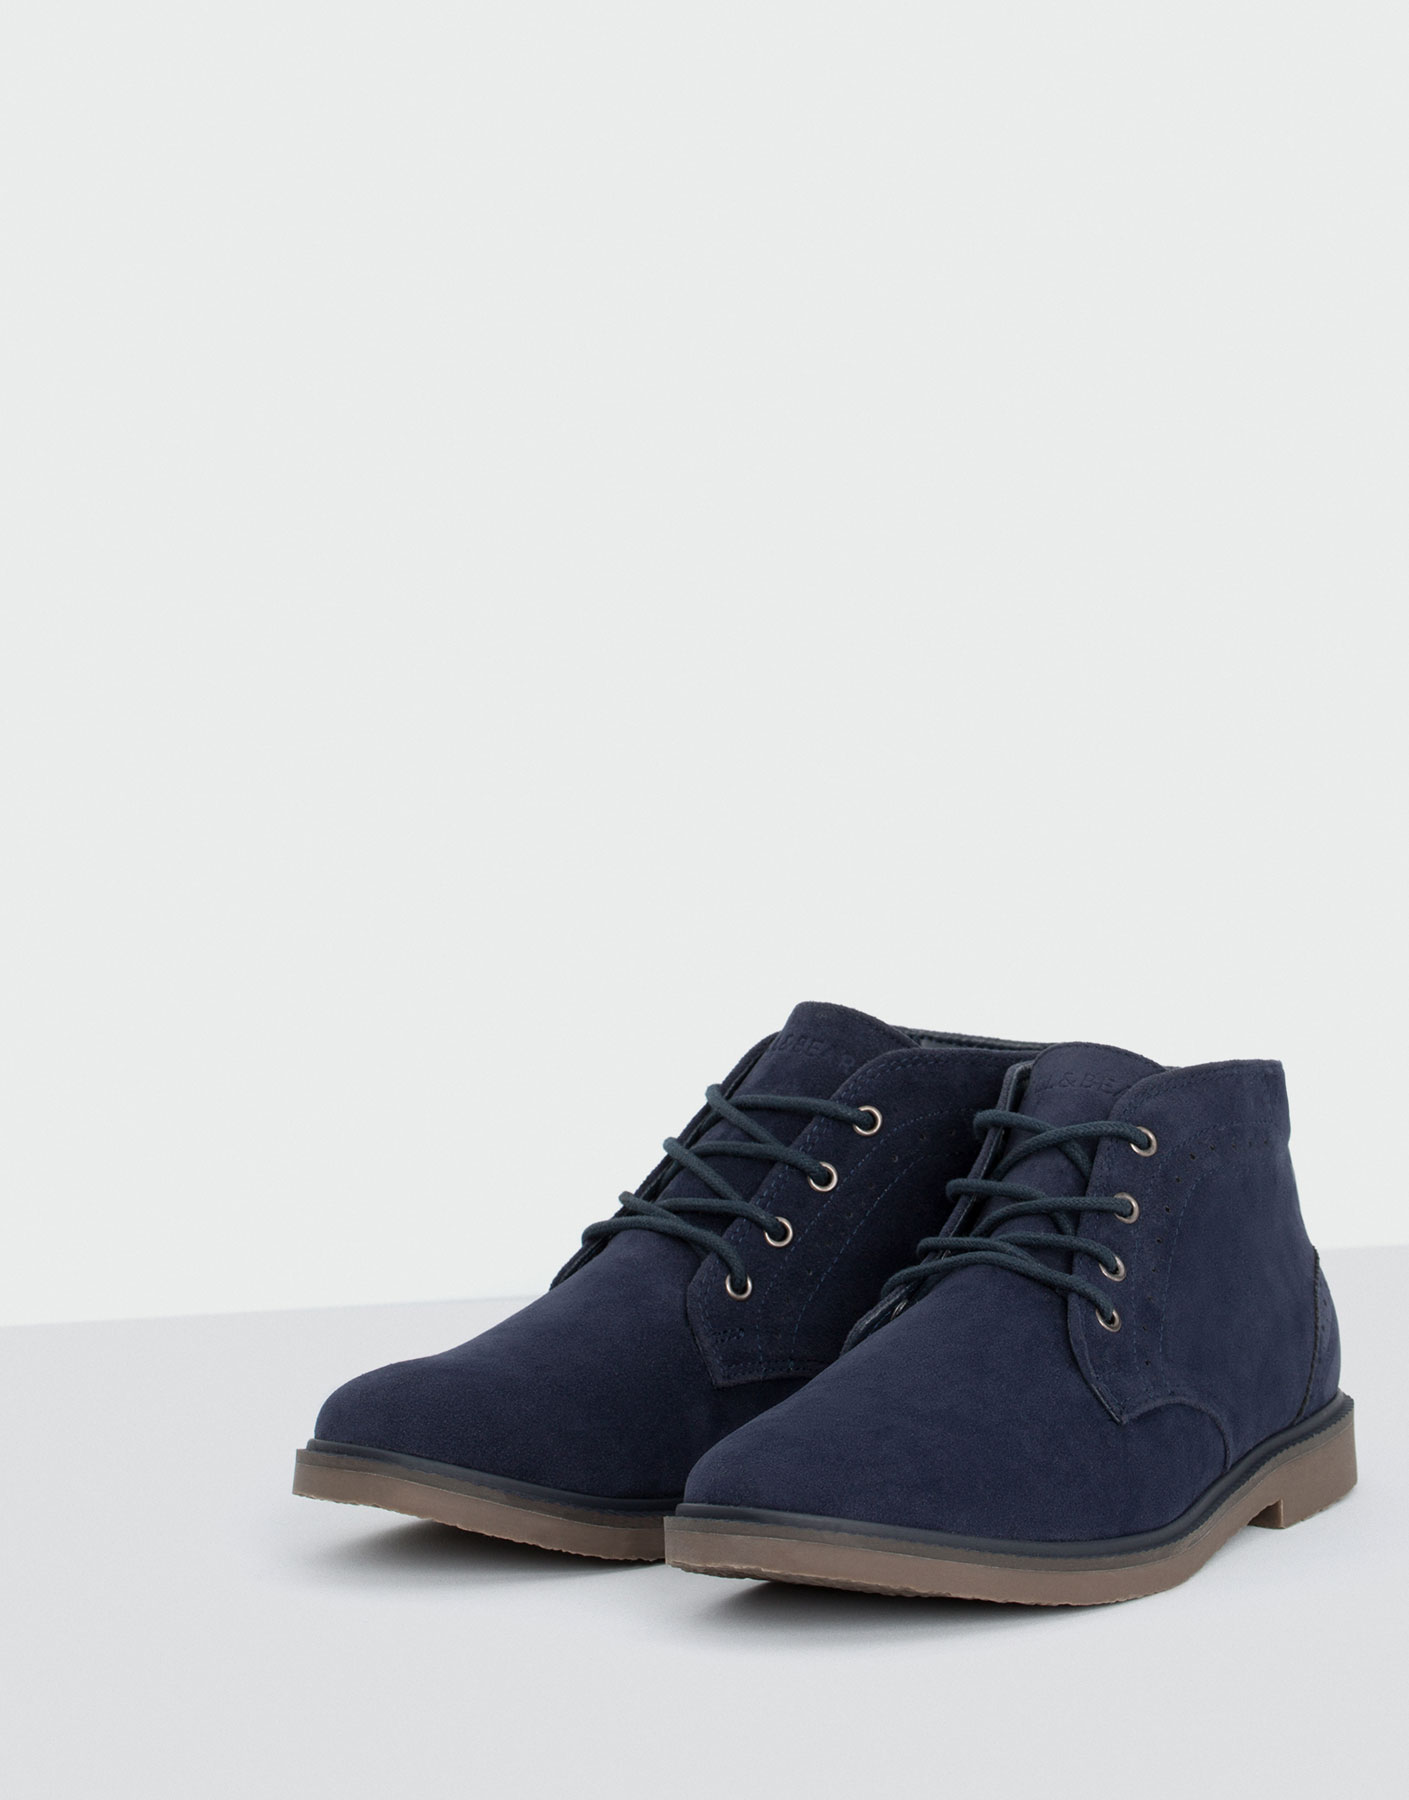 Desert ankle boots with broguing